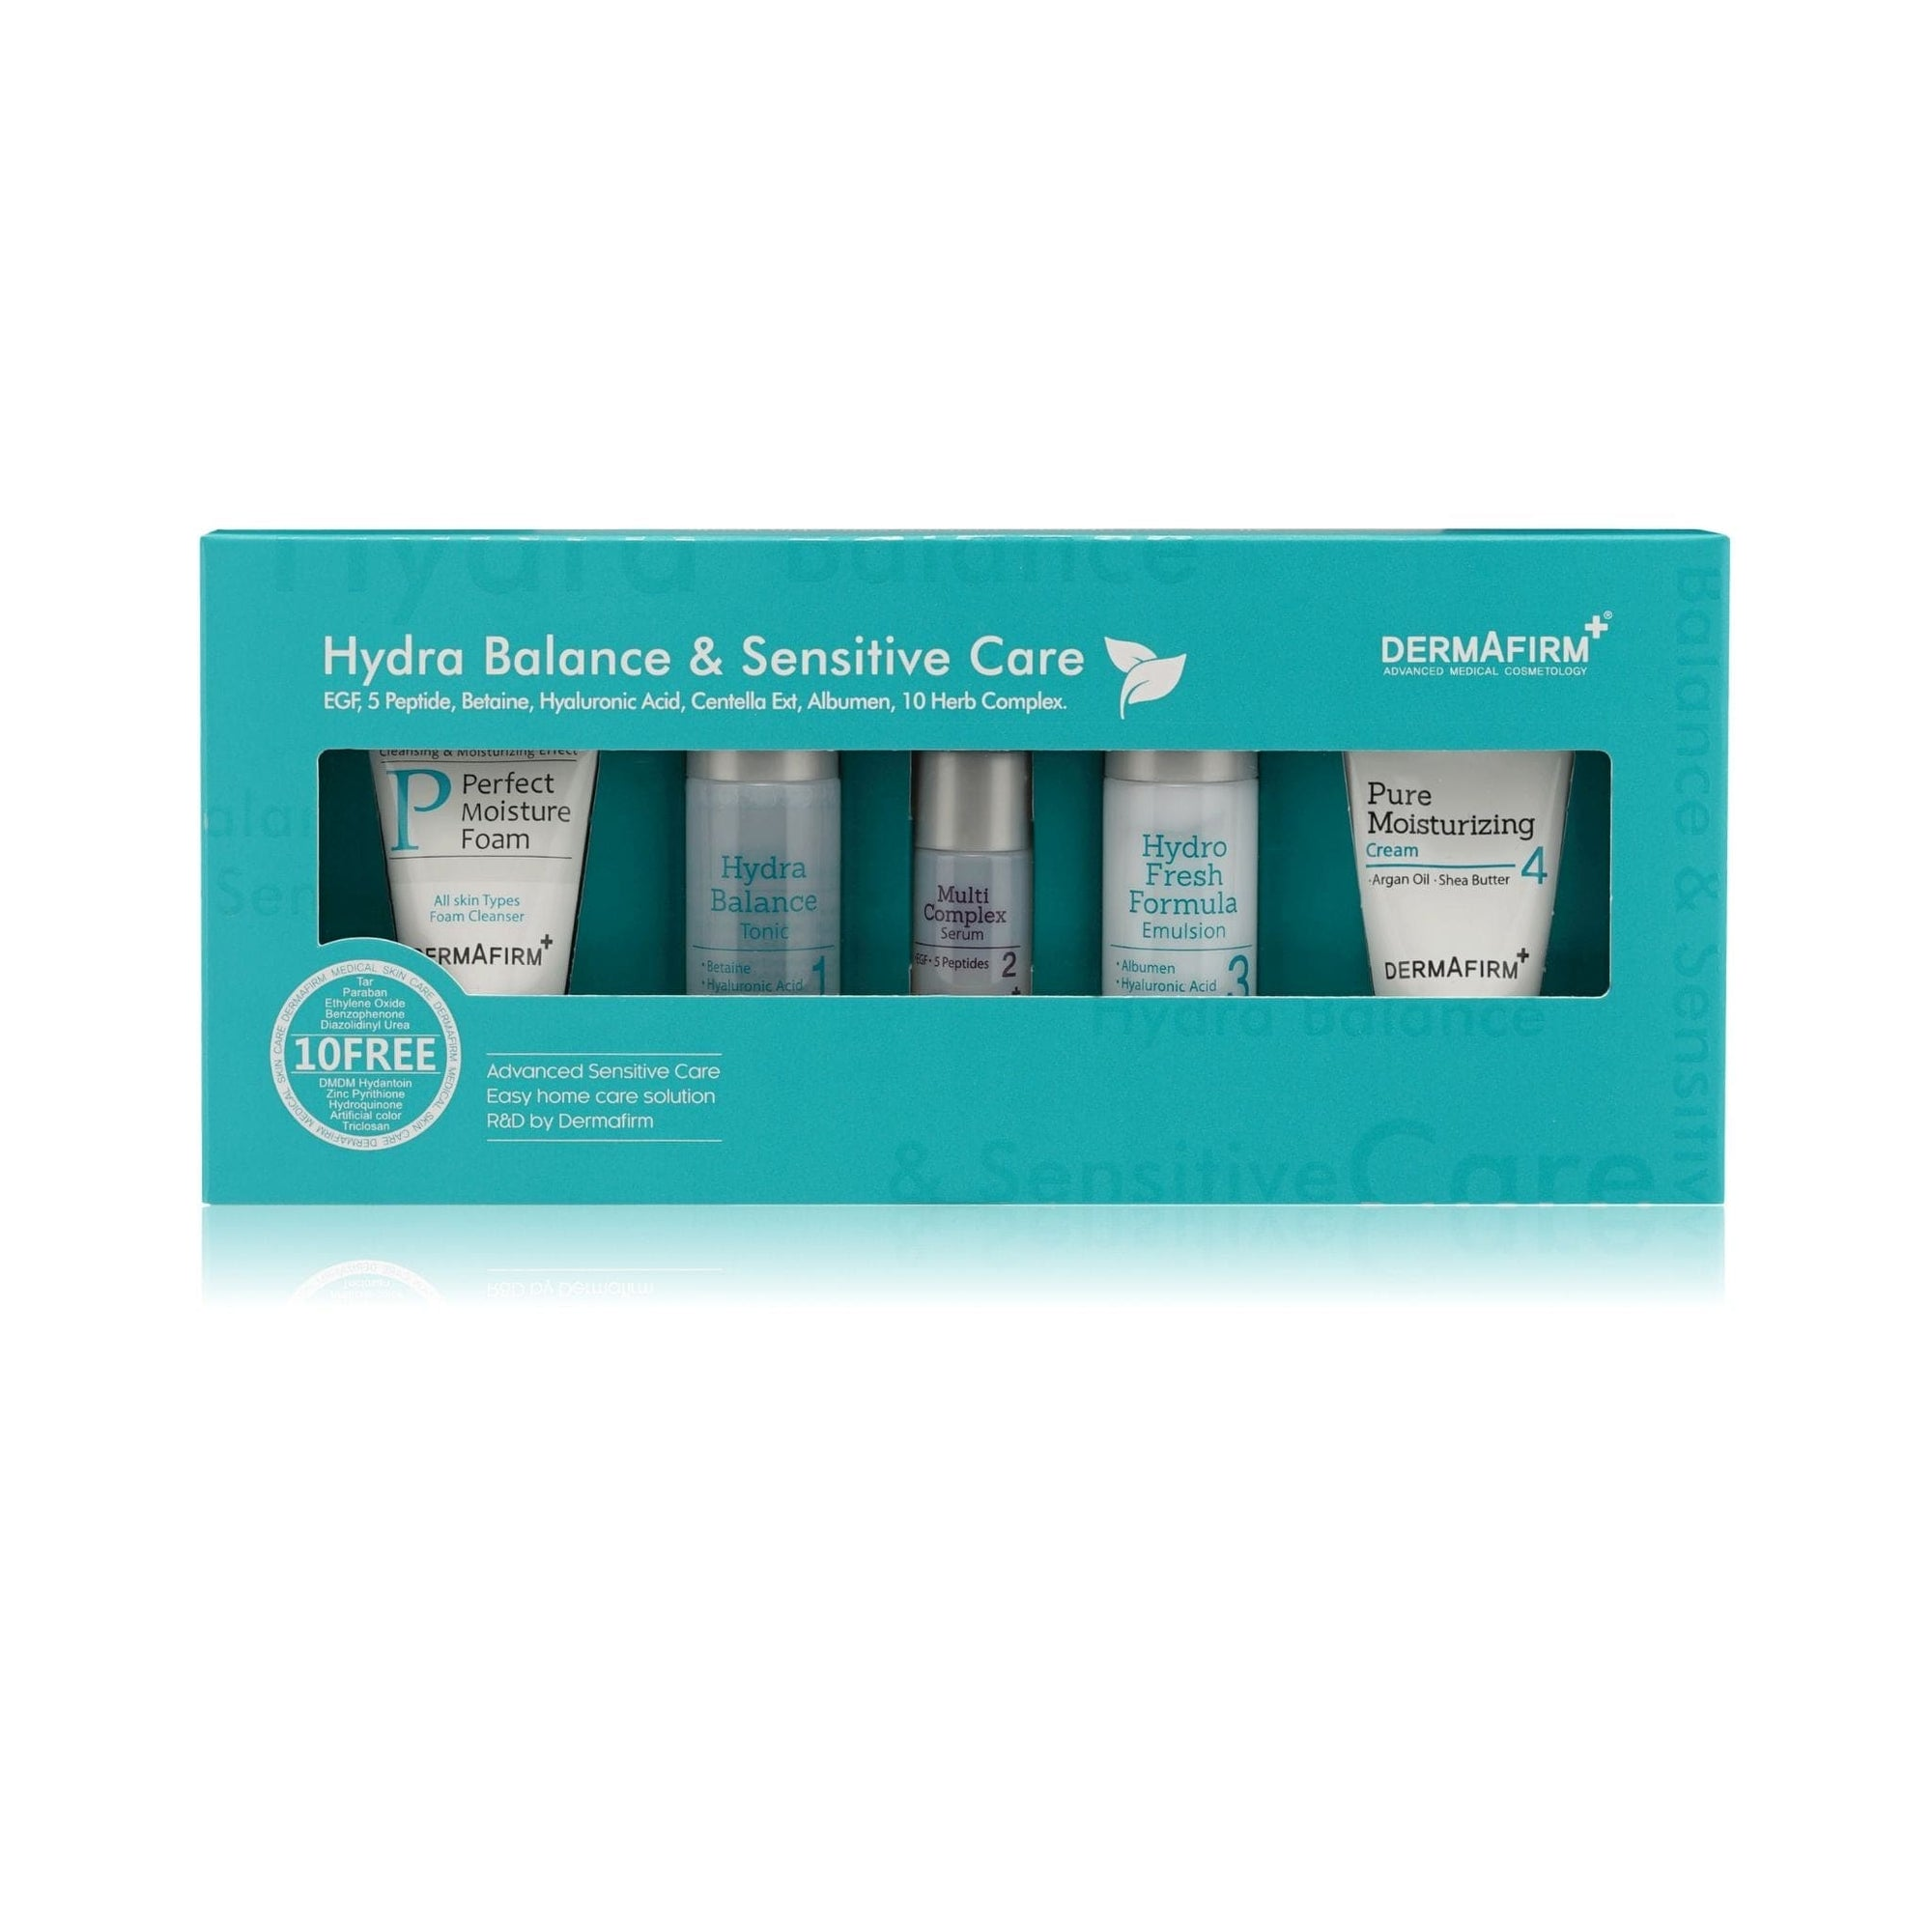 Hydra Balance & Sensitive Care - Starter Kit